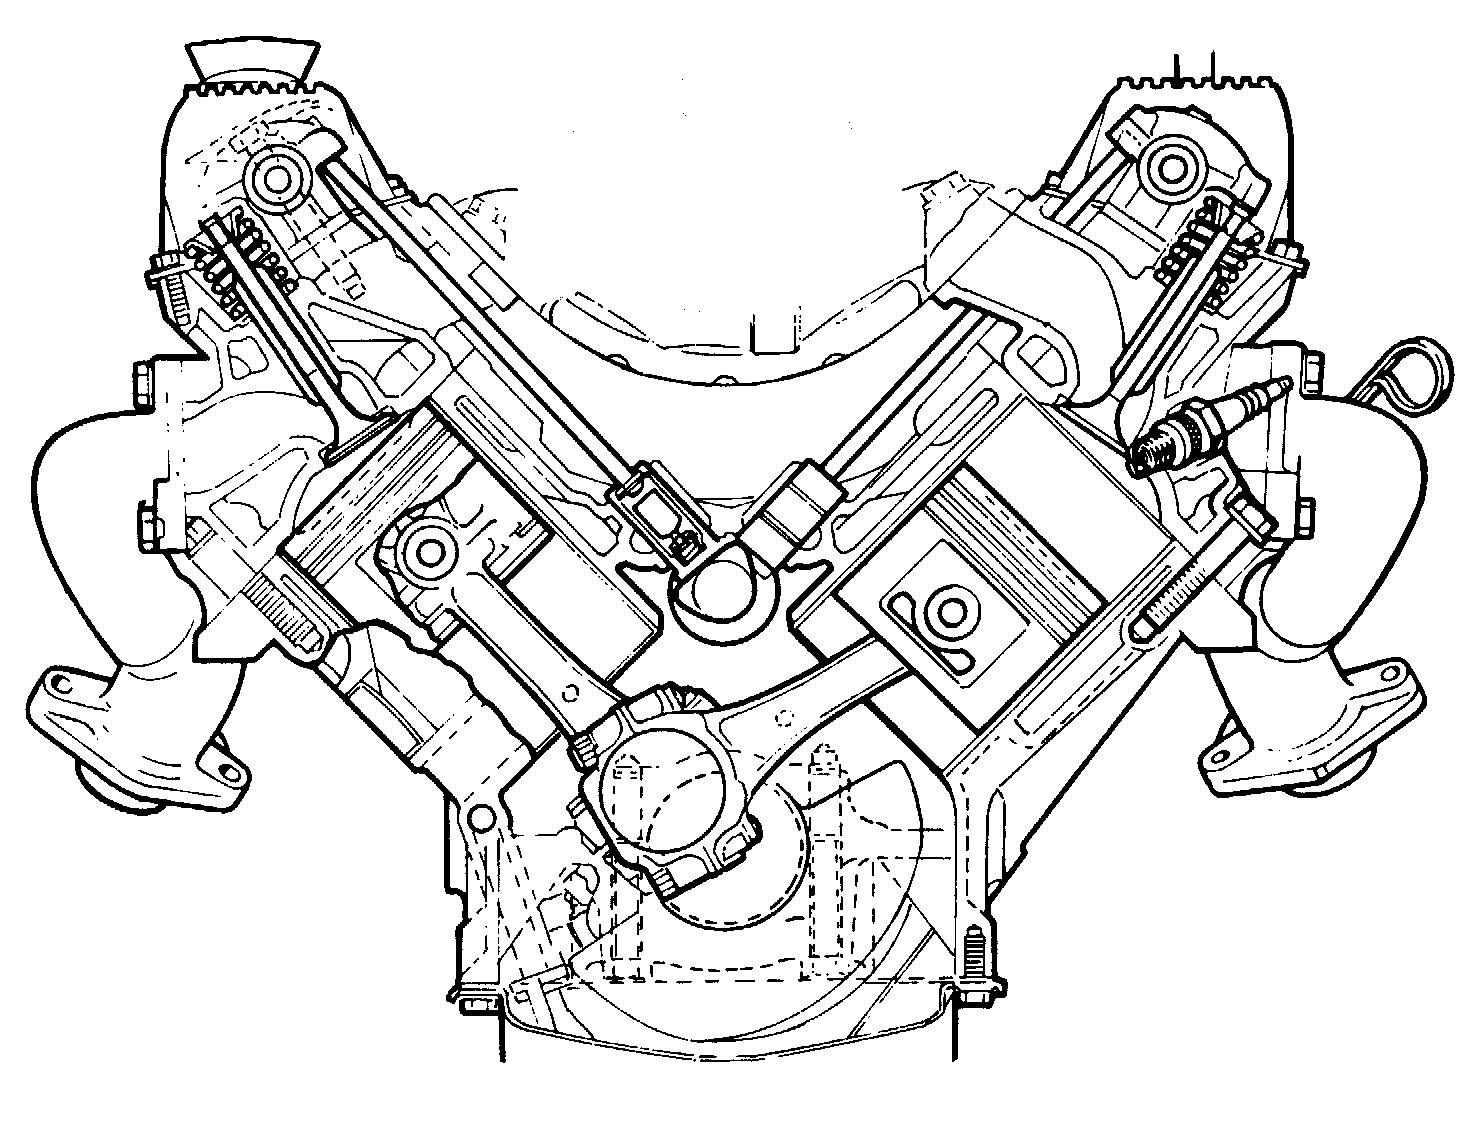 Chevrolet Engine Diagram In Line 6 Cylinder on 150cc Scooter Vacuum Diagram